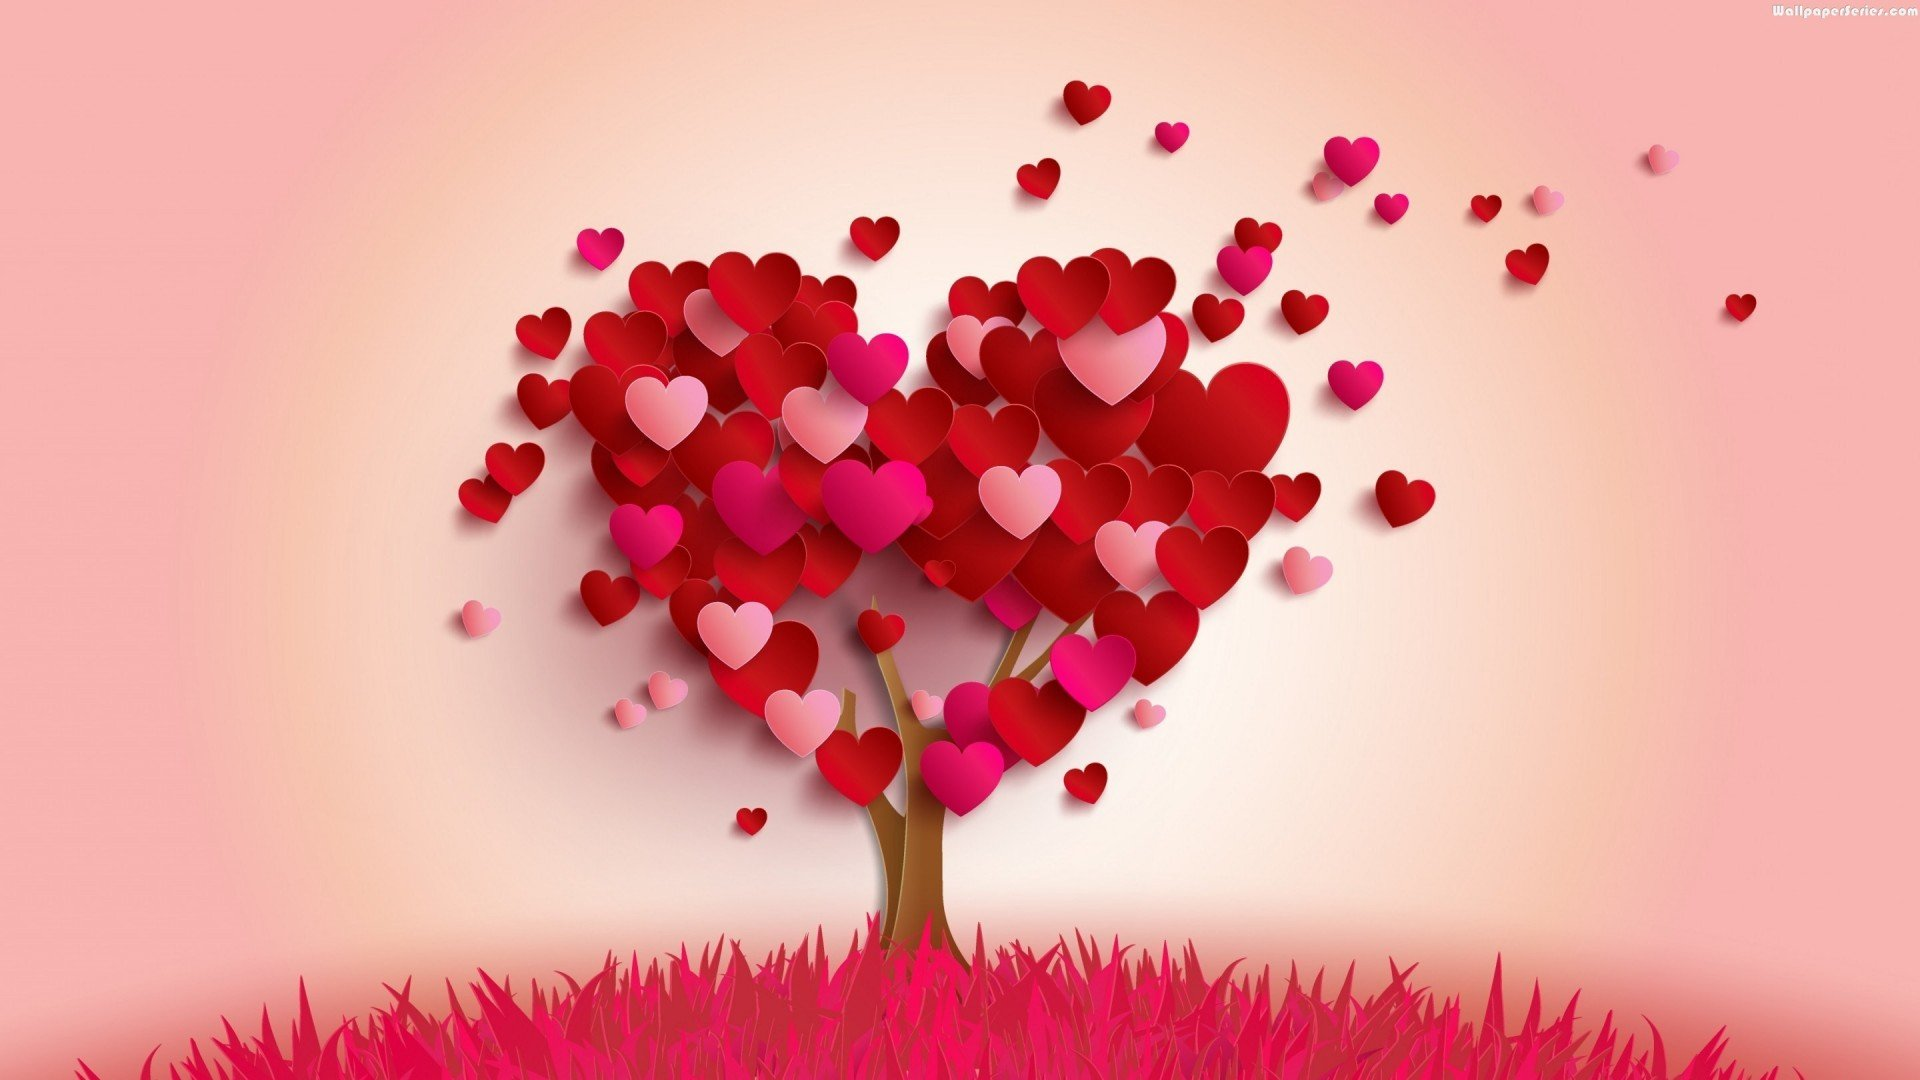 Fall Pictures For Facebook Wallpaper 5 Best Valentine S Day Marketing Campaigns That Will Melt